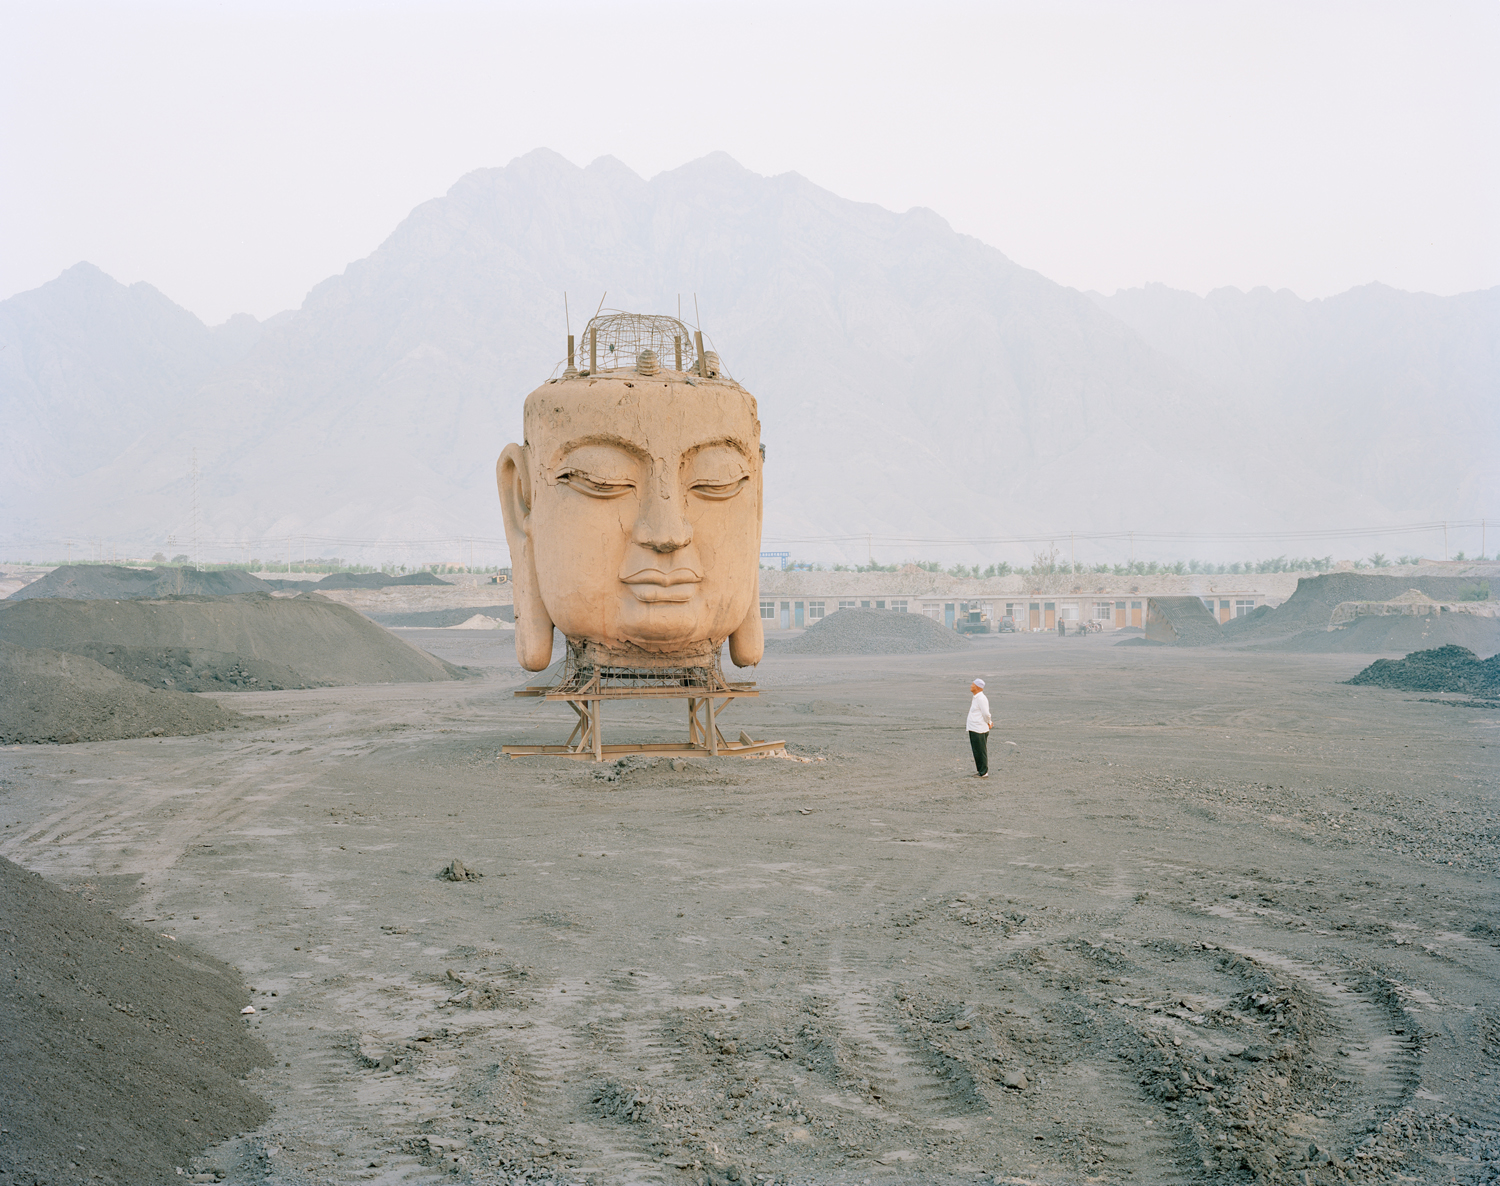 All photos in this series were taken between 2010 and 2012.                               A giant Buddha's face in a coal yard, Ningxia province.